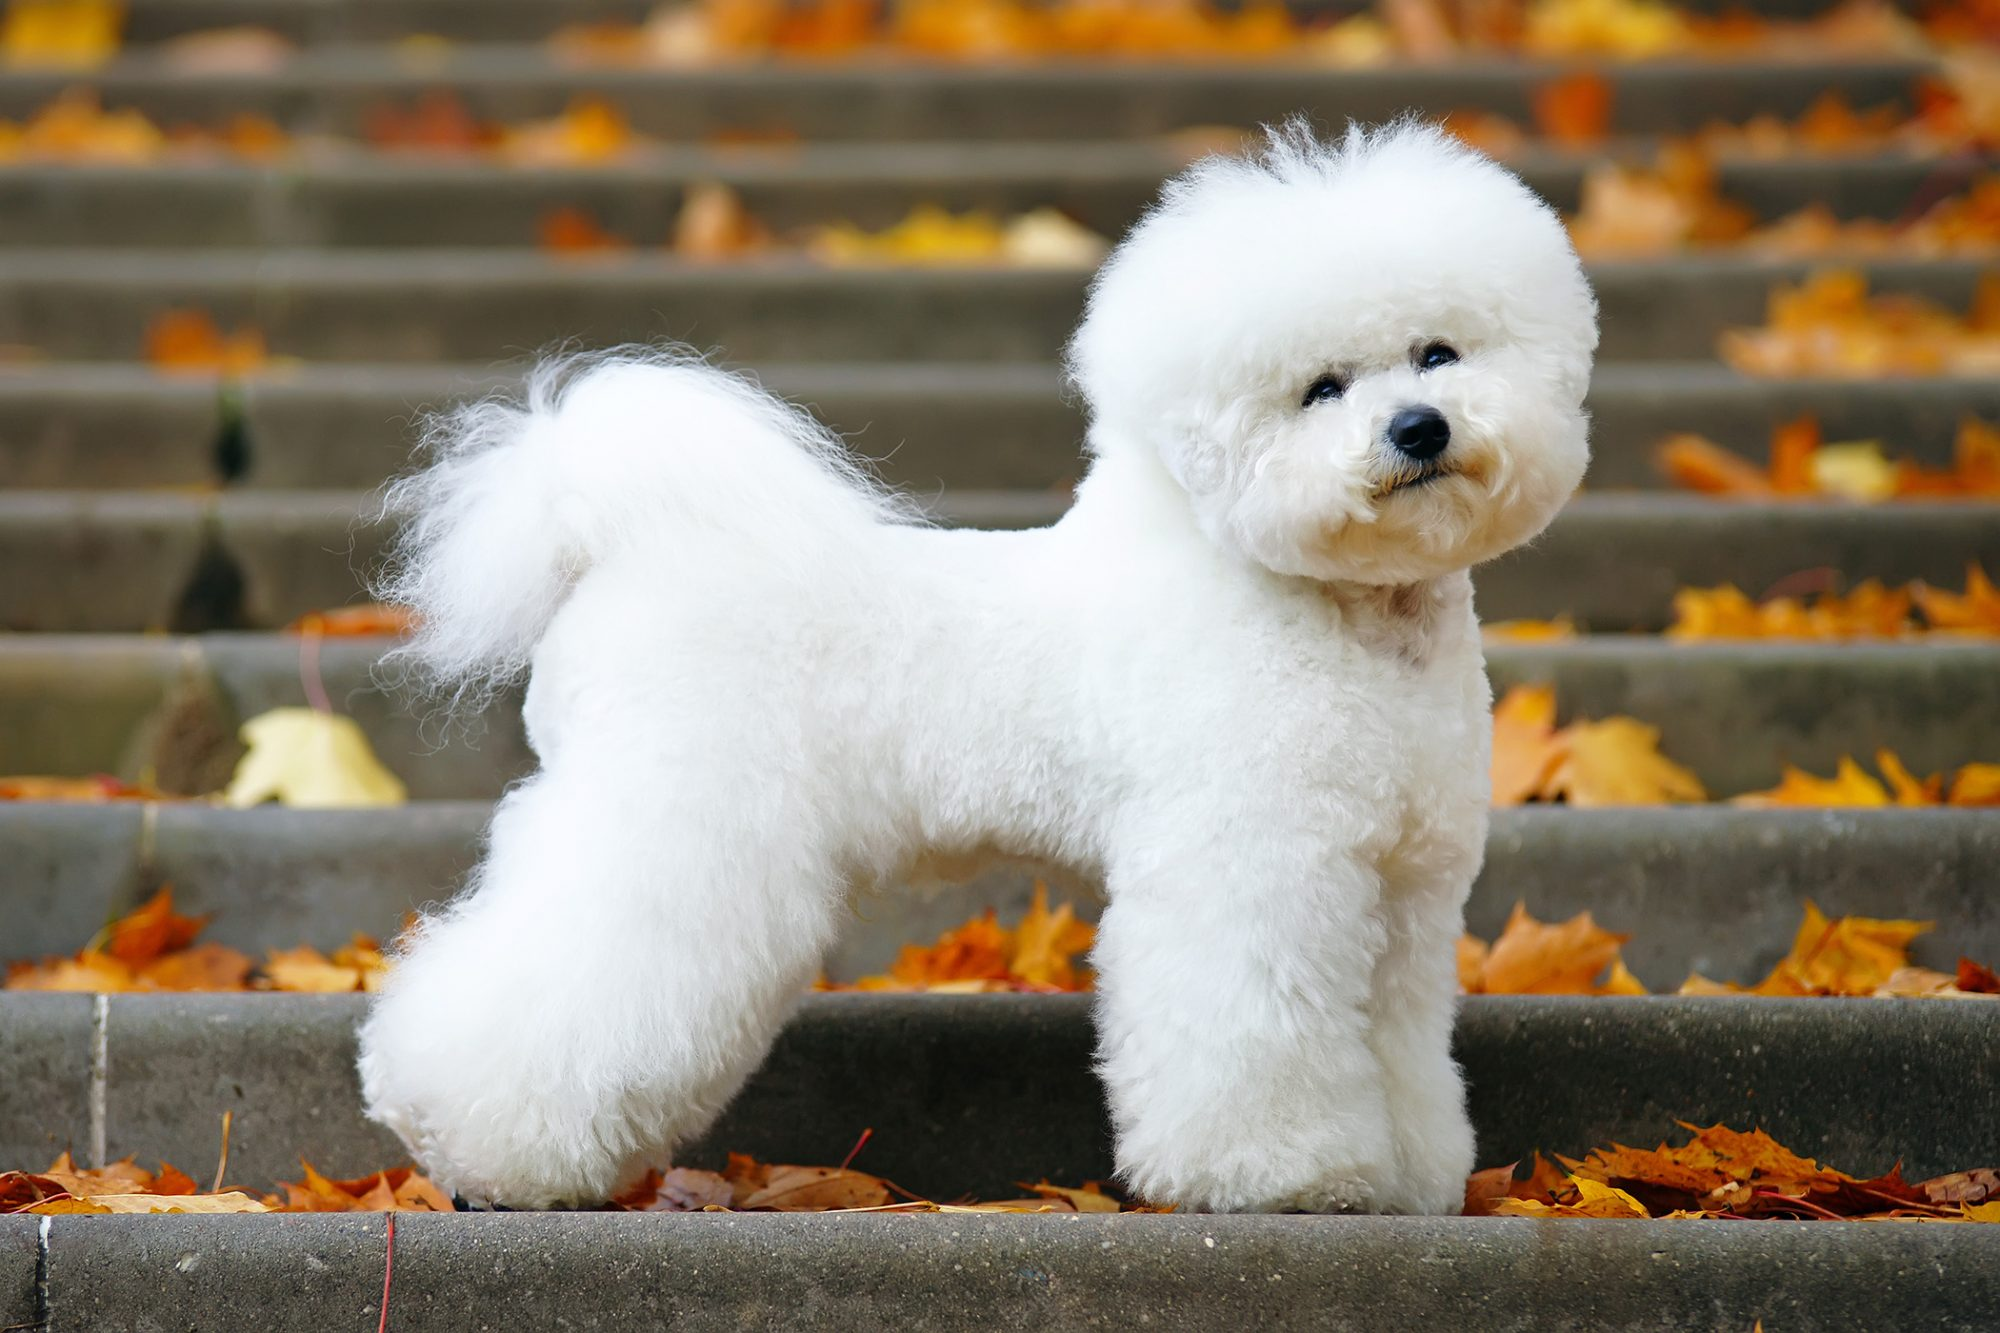 Fluffy Bichon frise stands on steps with autumn leaves